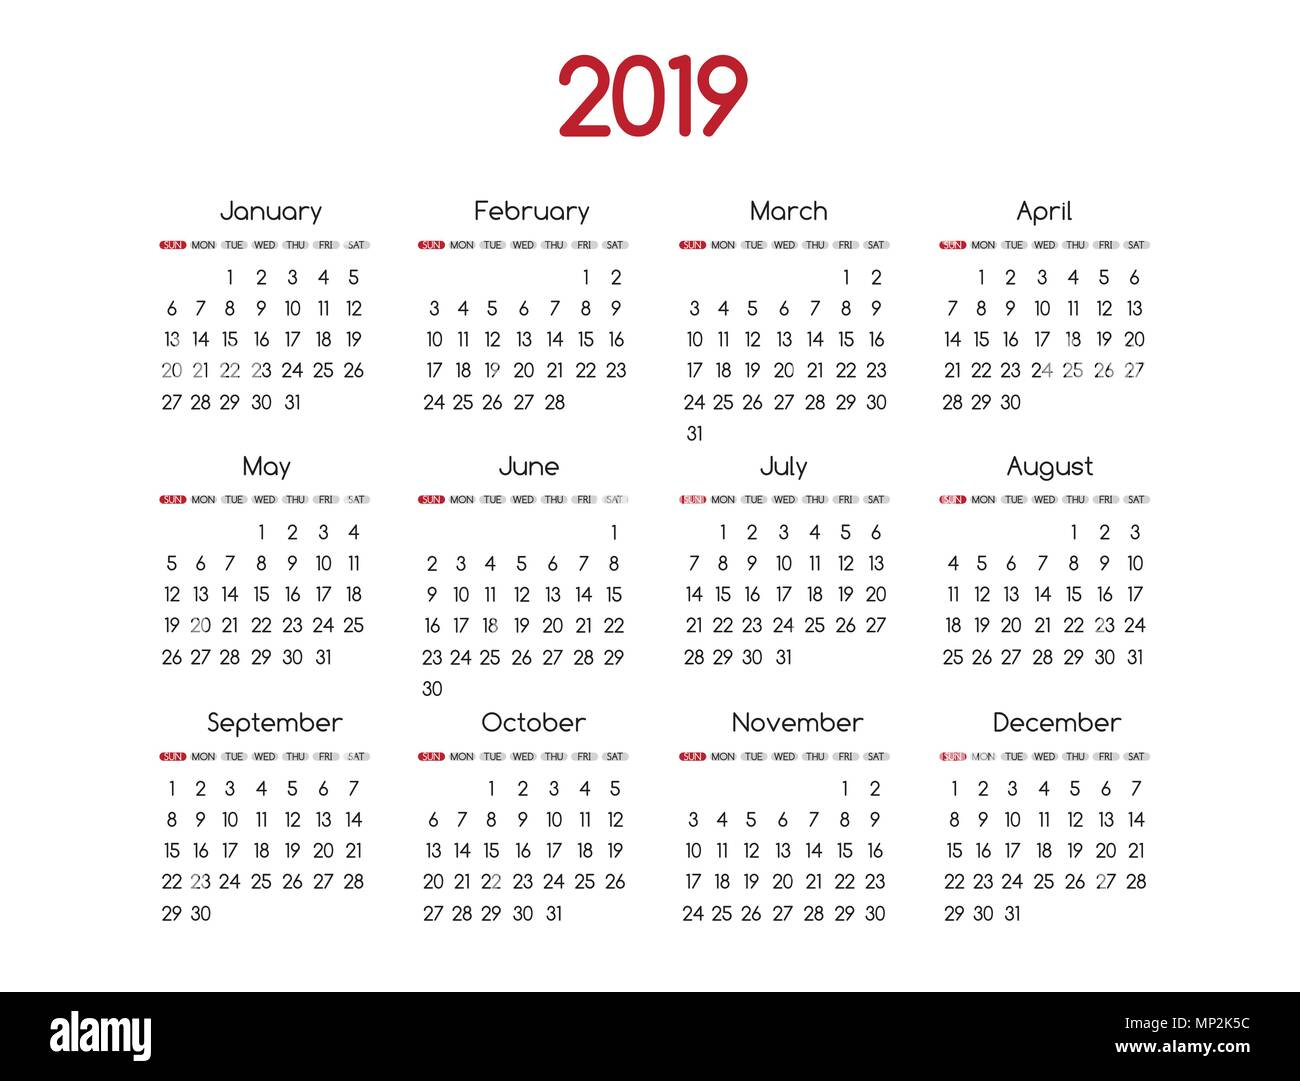 2019 new year vector calendar modern simple design with round san serif fontholiday event plannerweek starts sunday